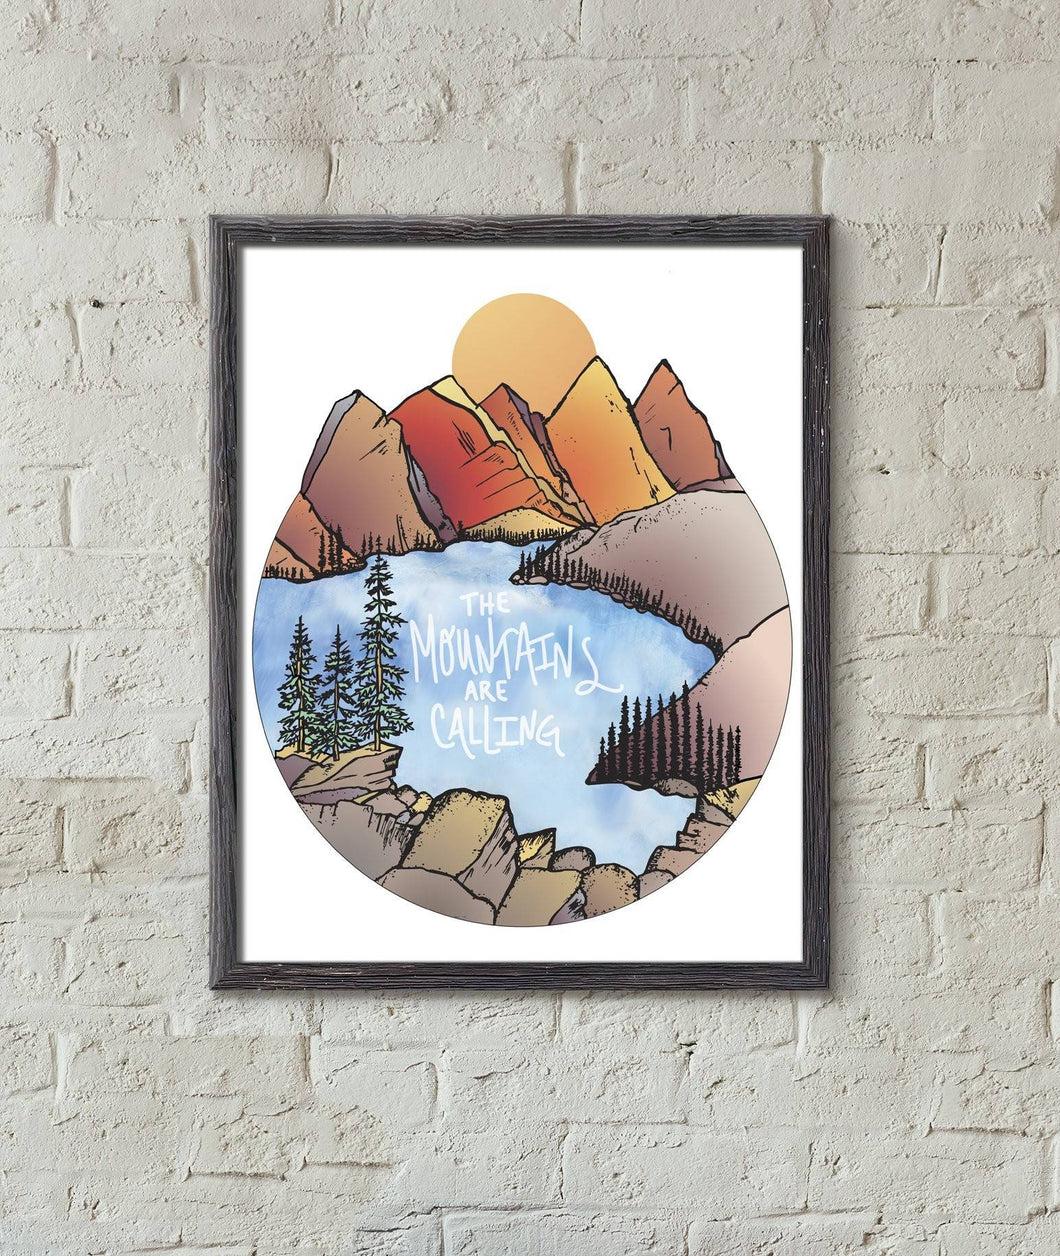 The Mountains are Calling 11x14in Art Print